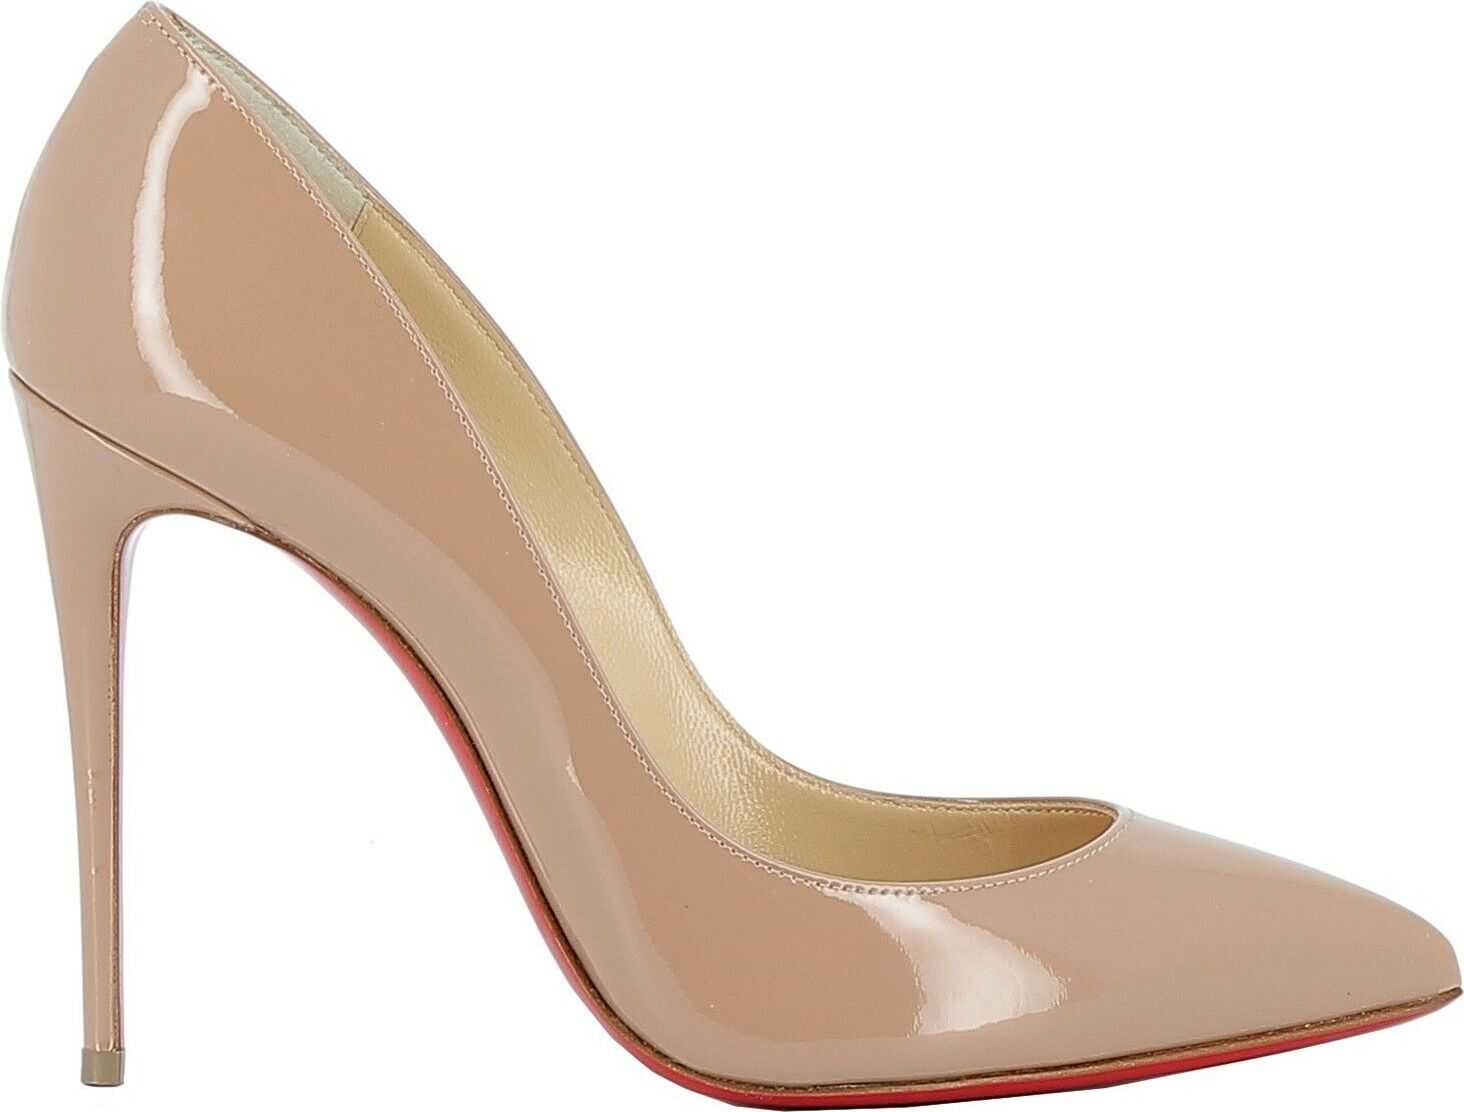 Christian Louboutin Leather Pumps PINK